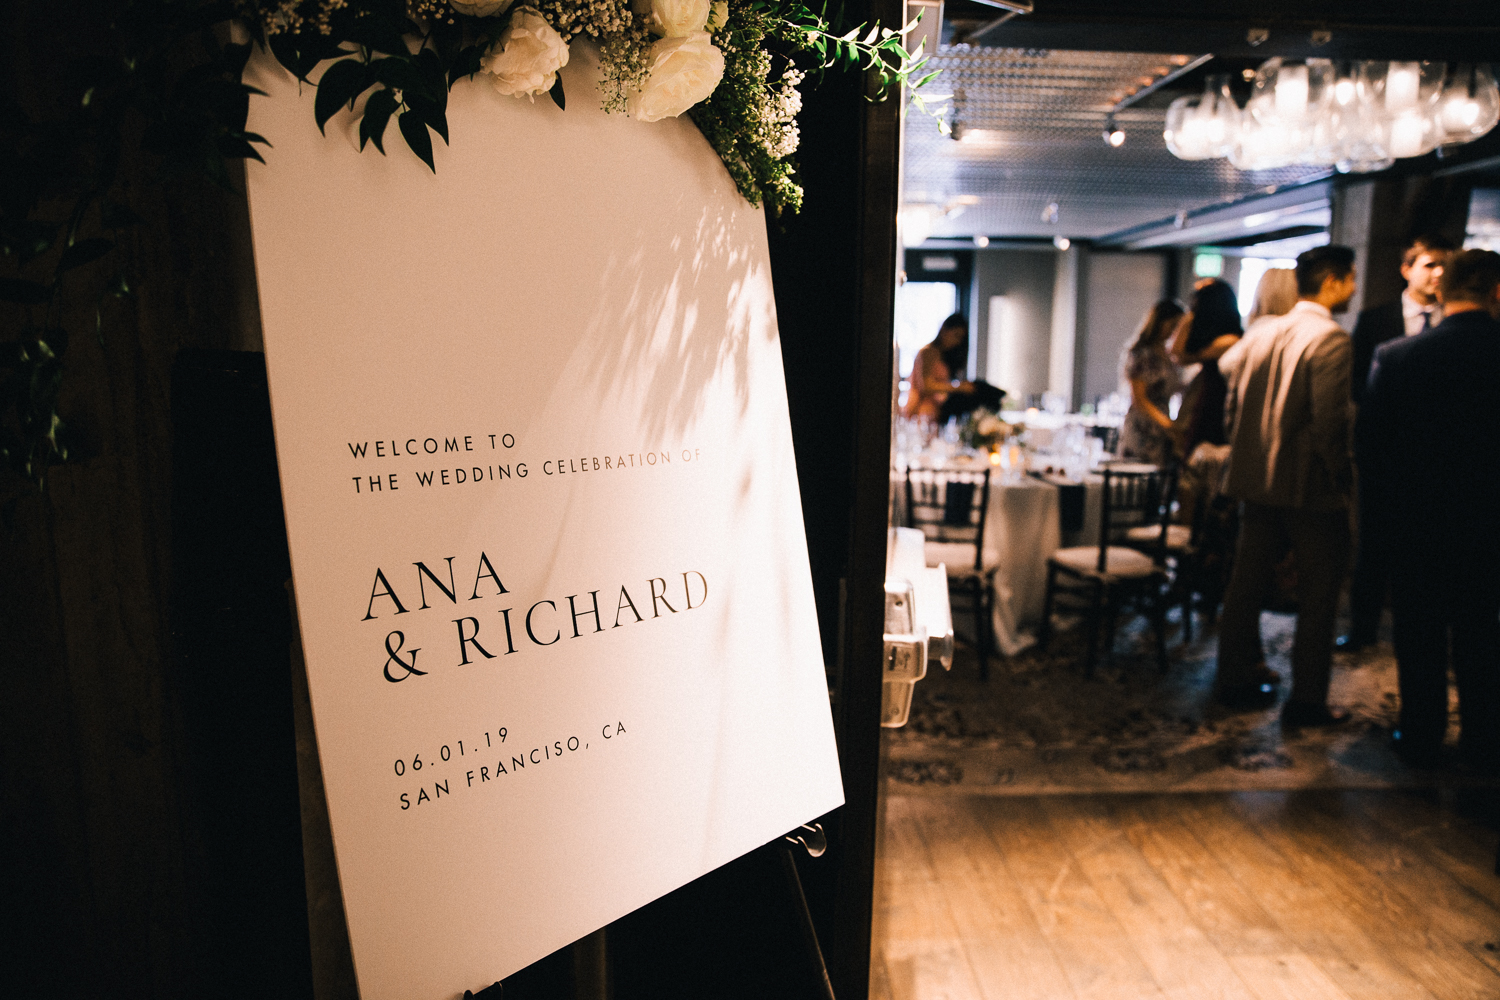 2019.06.01 Ana + Richard SF Wedding Blog Photos -3954.jpg